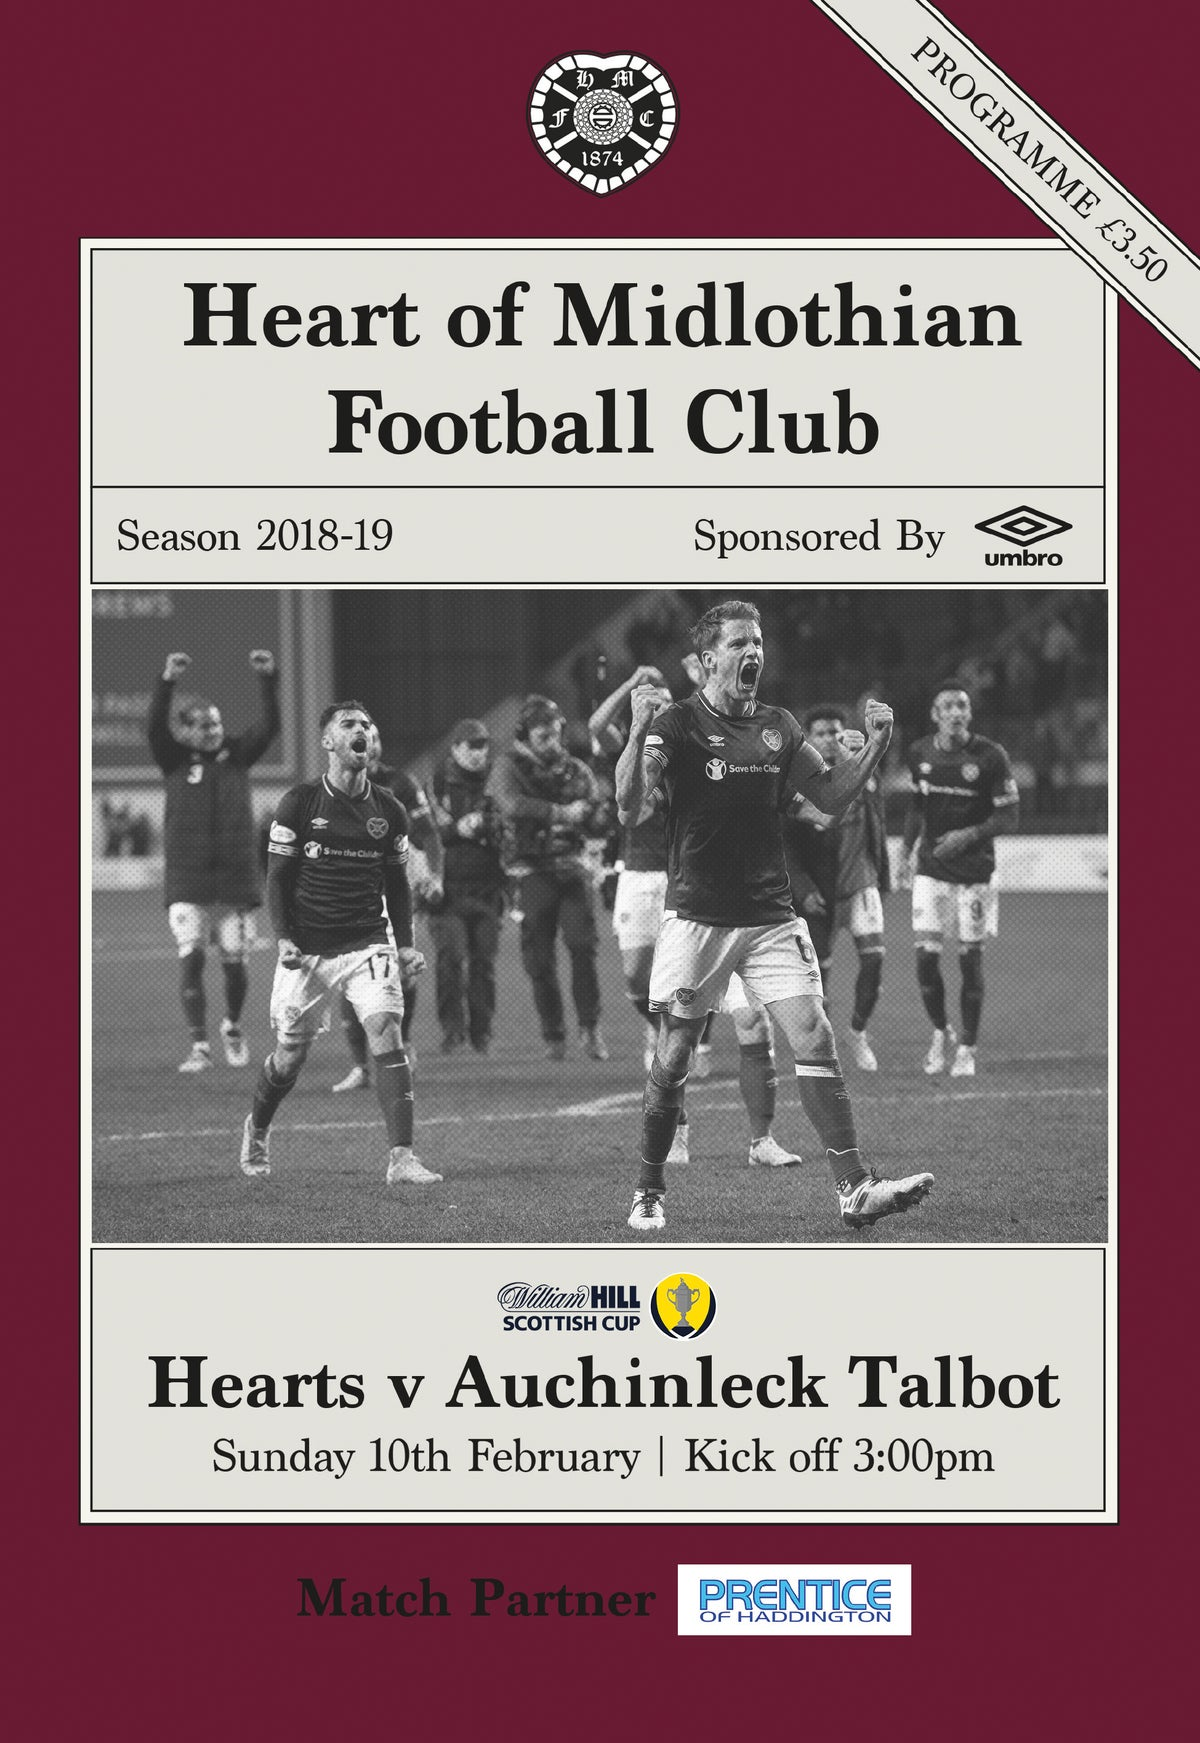 Image of Hearts v Auchinleck Talbot, 10th February 2019